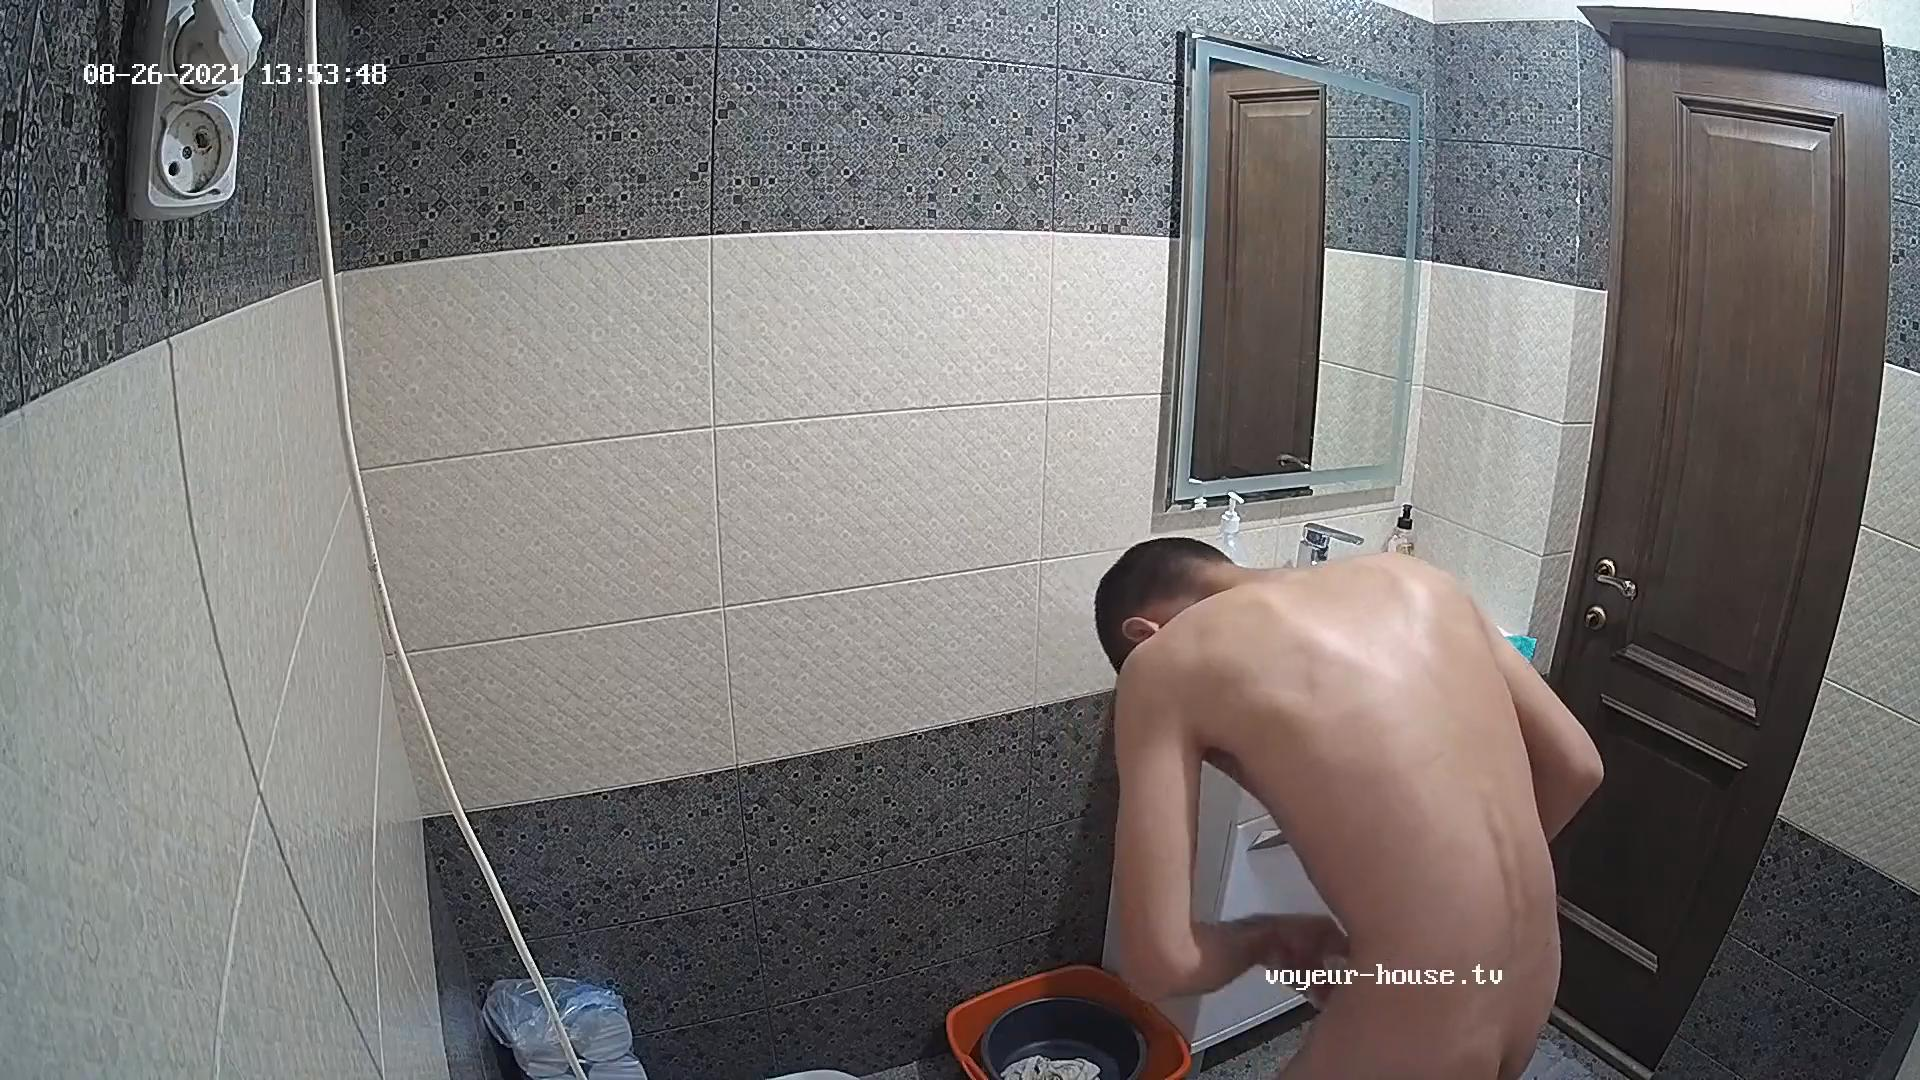 Assano naked in bathroom 26 Aug 2021